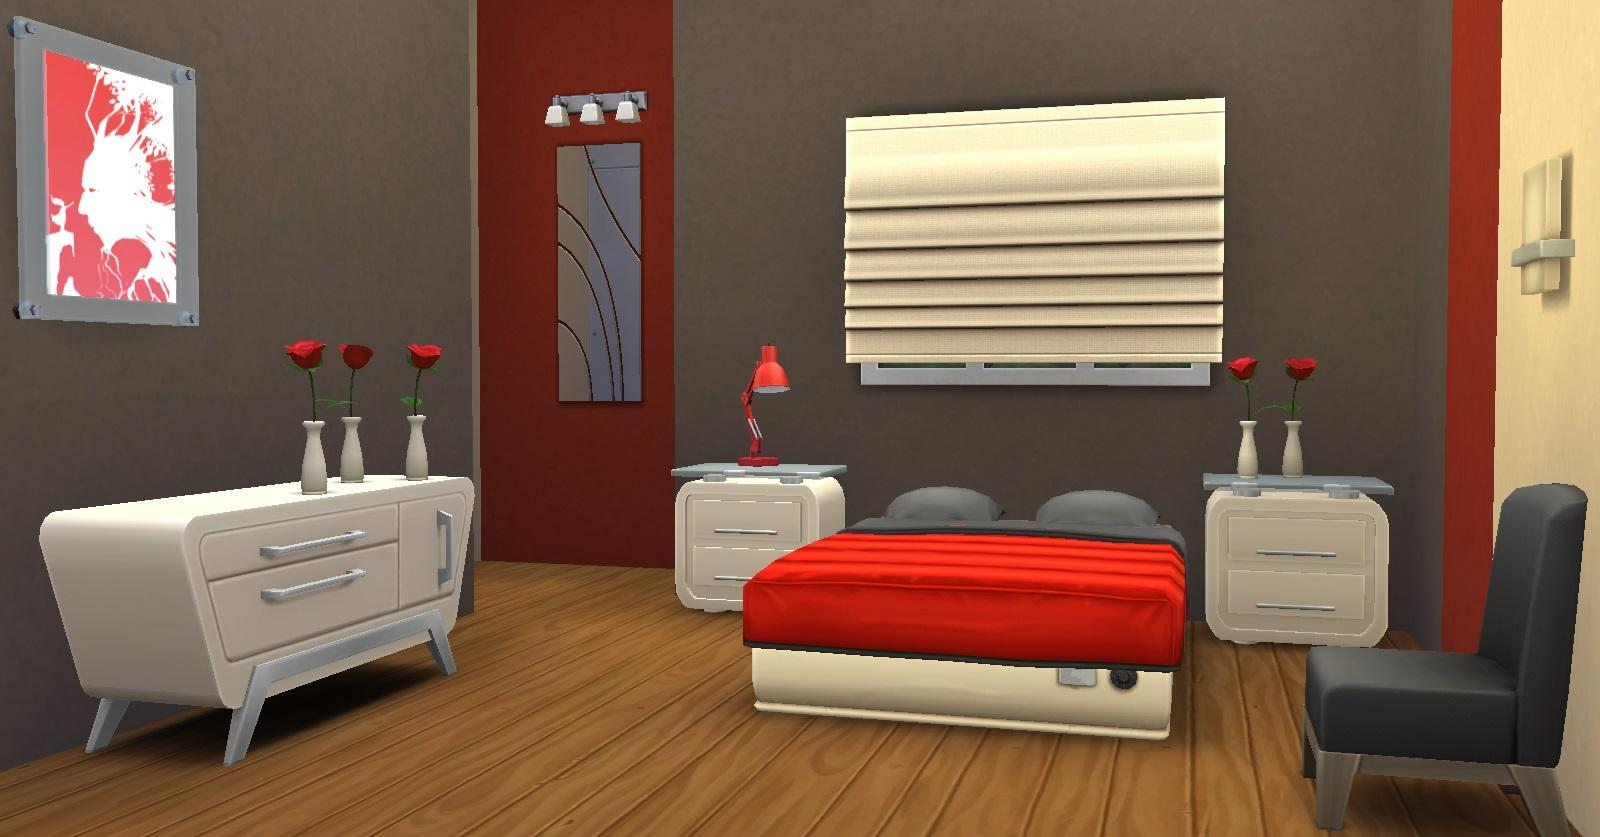 et si on mariait les couleurs le gris fin 16 09 les sims. Black Bedroom Furniture Sets. Home Design Ideas